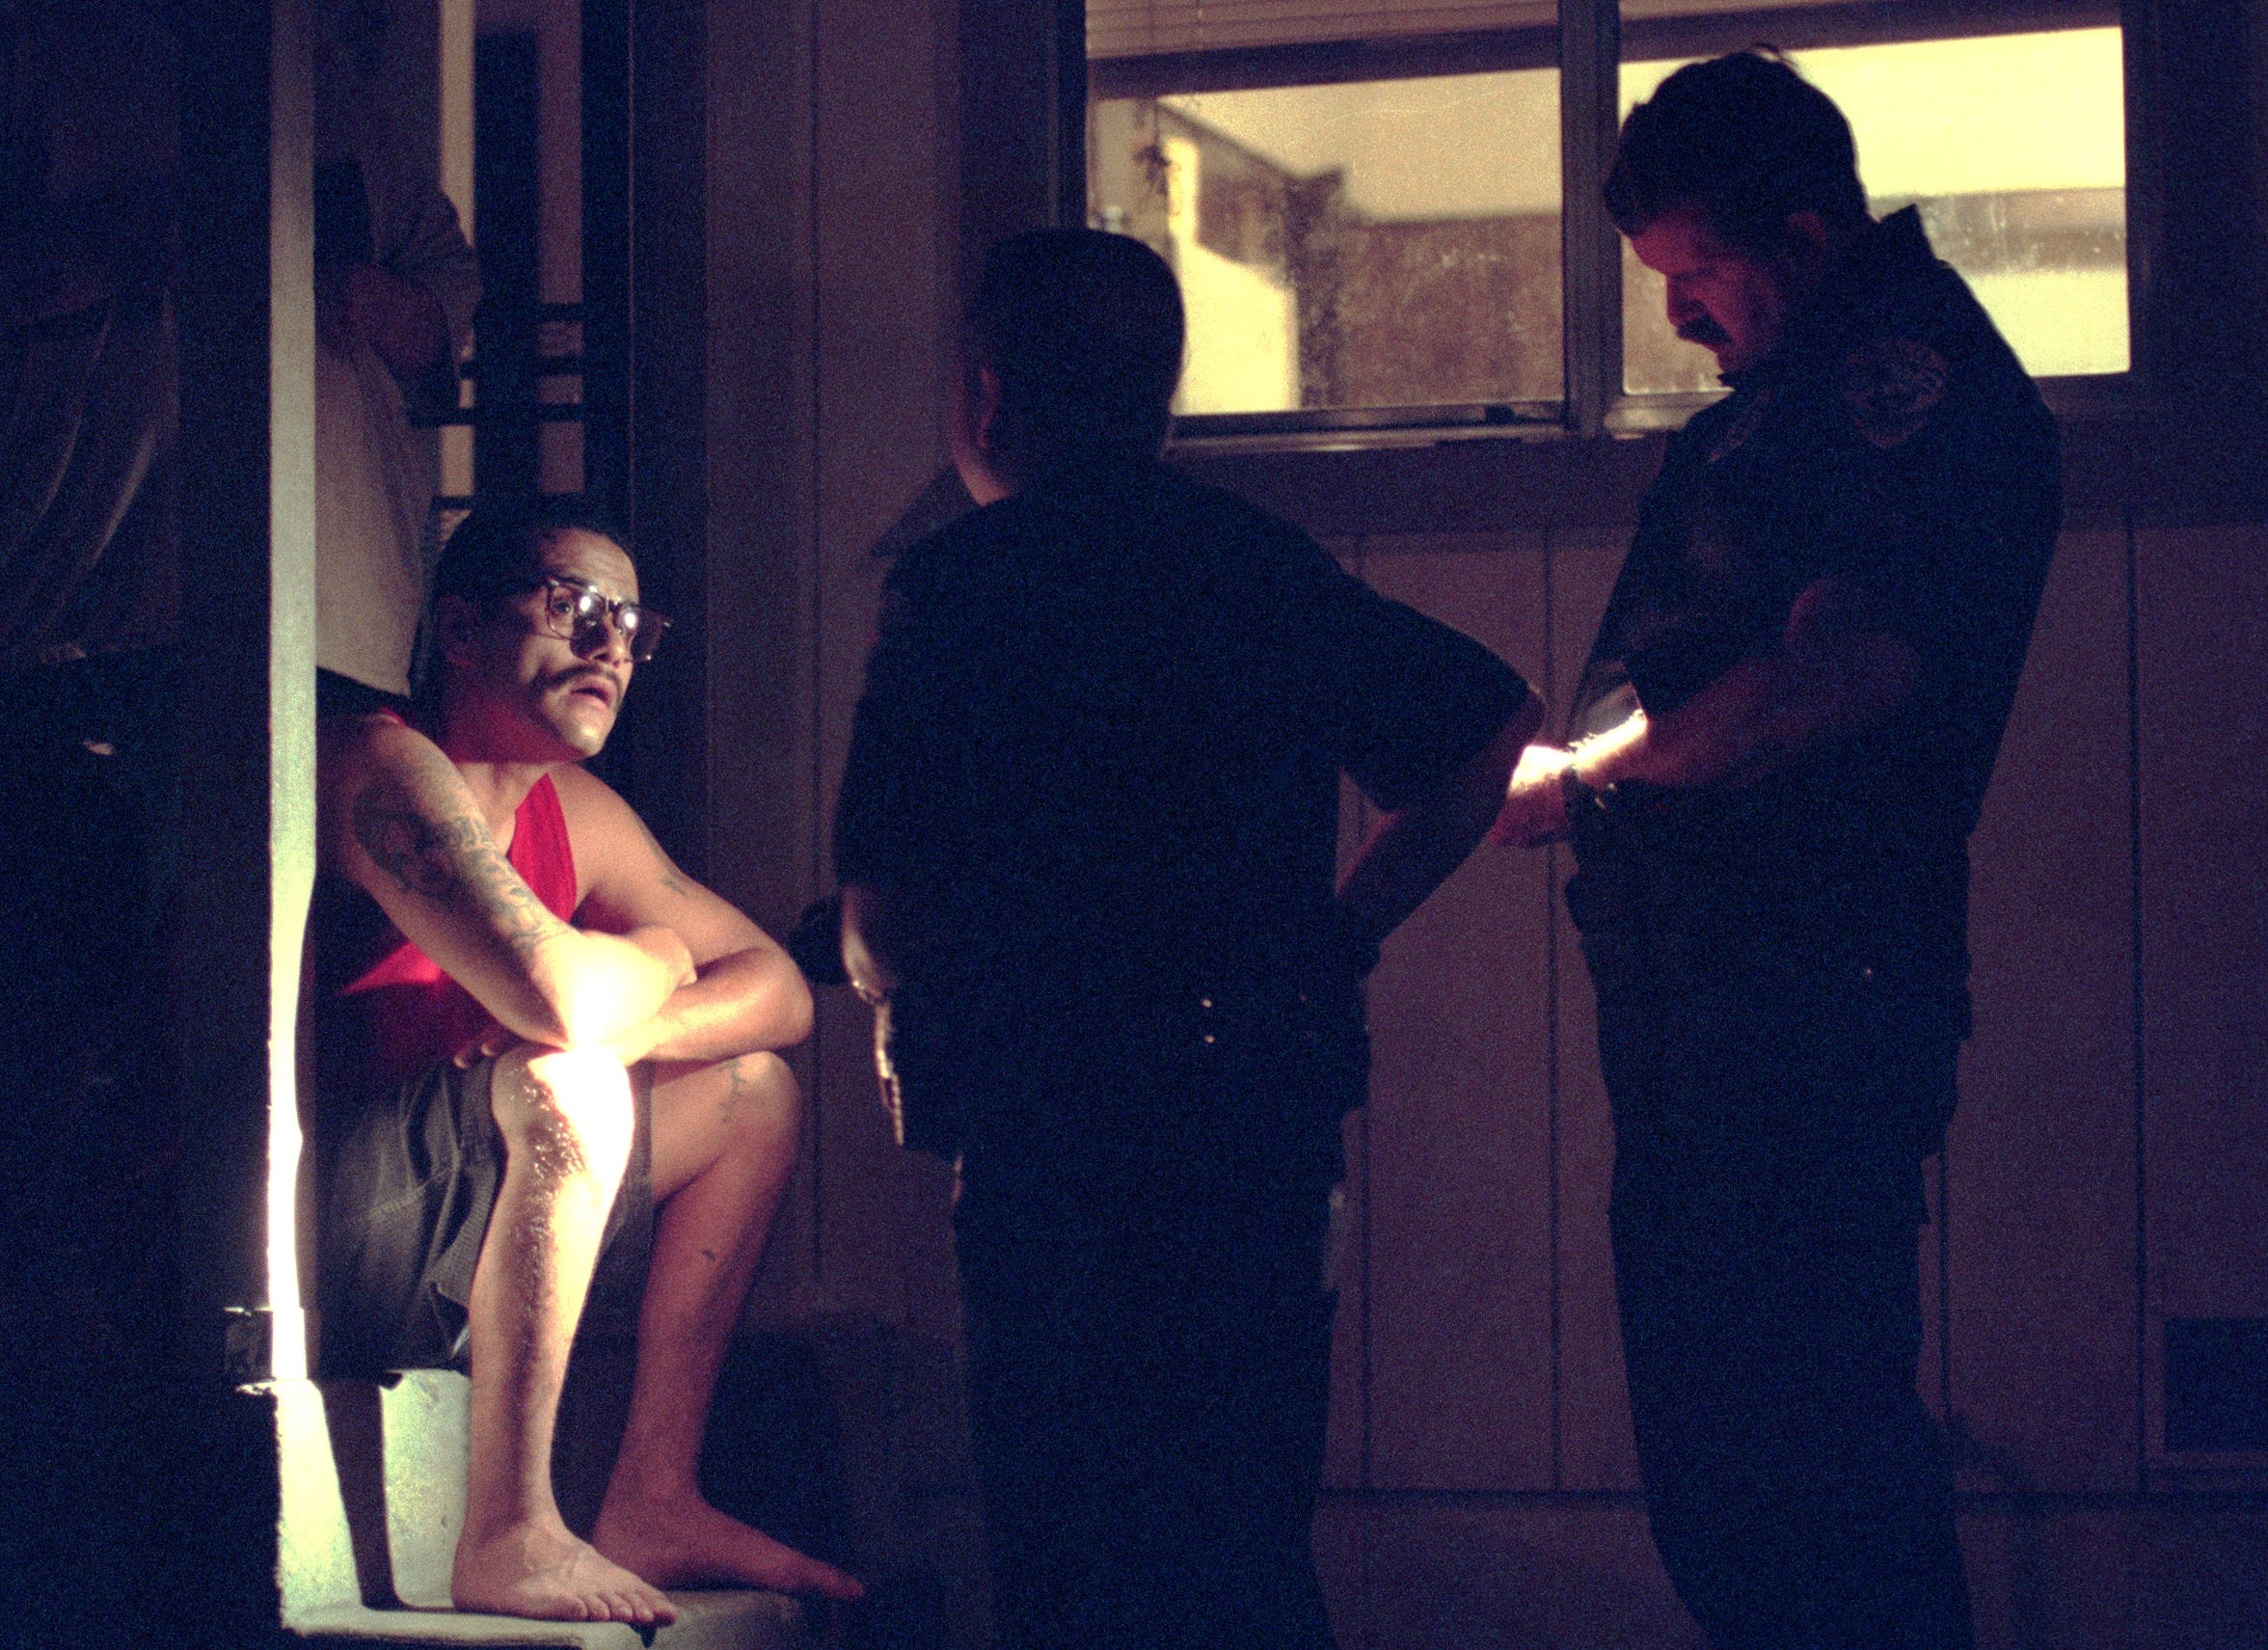 Officers Russ Skaden of the Visalia Police Department, right, and Robert Vasquez of the Farmersville Police Department interview Ray Salazar in June of 1999 about his activities that night. Salazar was later arrested for violating his parole terms. It was the second visit that night and they caught Salazar off guard smoking marijuana.